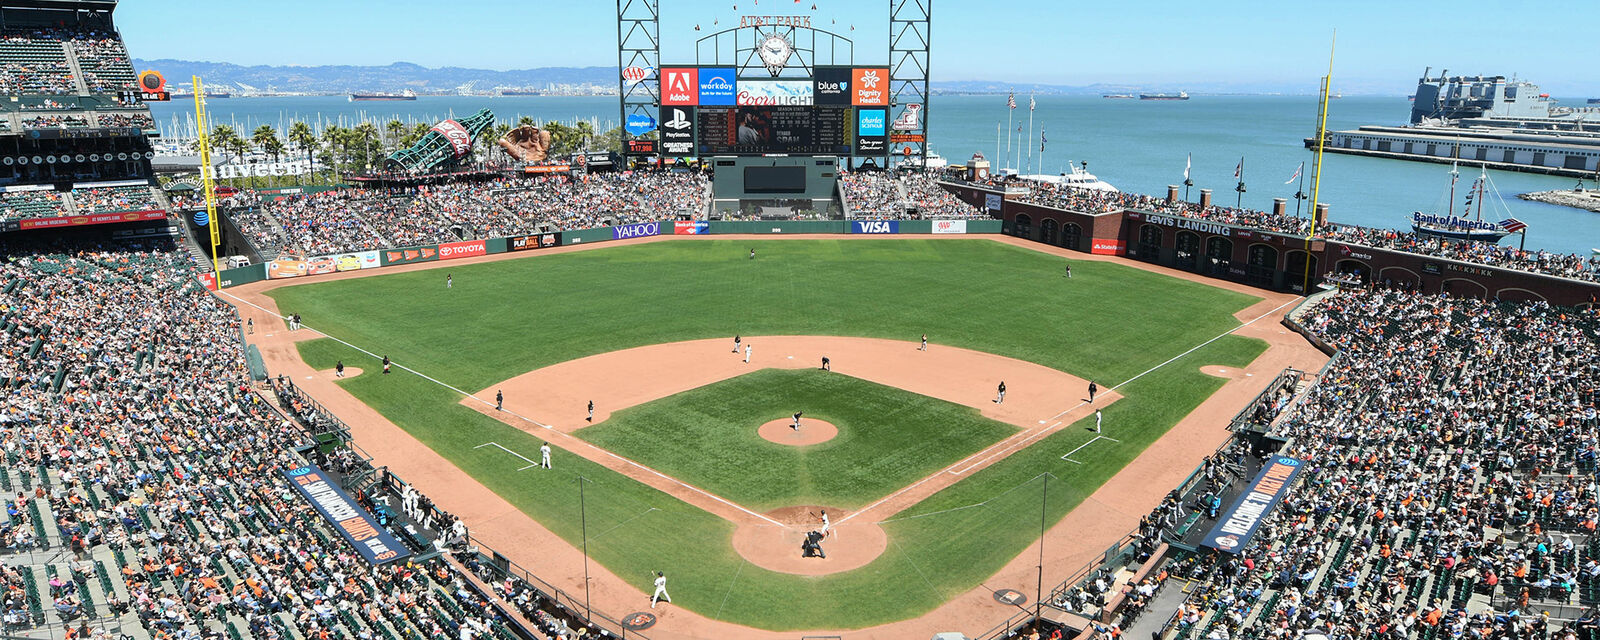 Philadelphia Phillies at San Francisco Giants Tickets (Willie McCovey Bobblehead)